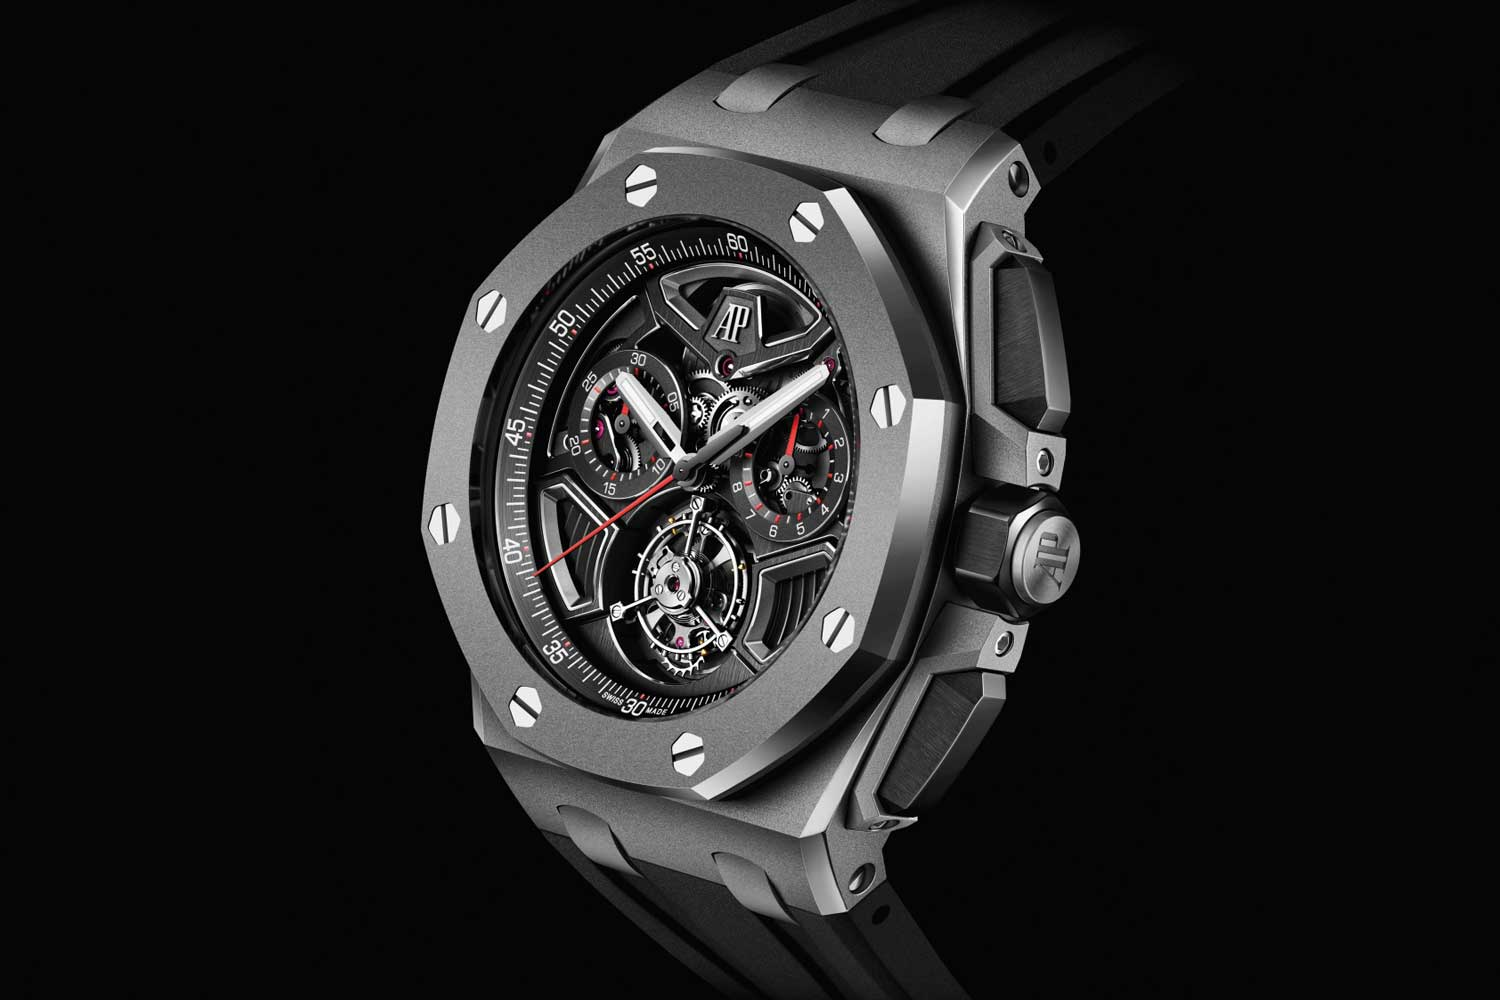 The new 43 mm Royal Oak Offshore self-winding flying tourbillon flyback chronograph with a sandblasted titanium case, architectural dial and black interchangeable rubber strap.